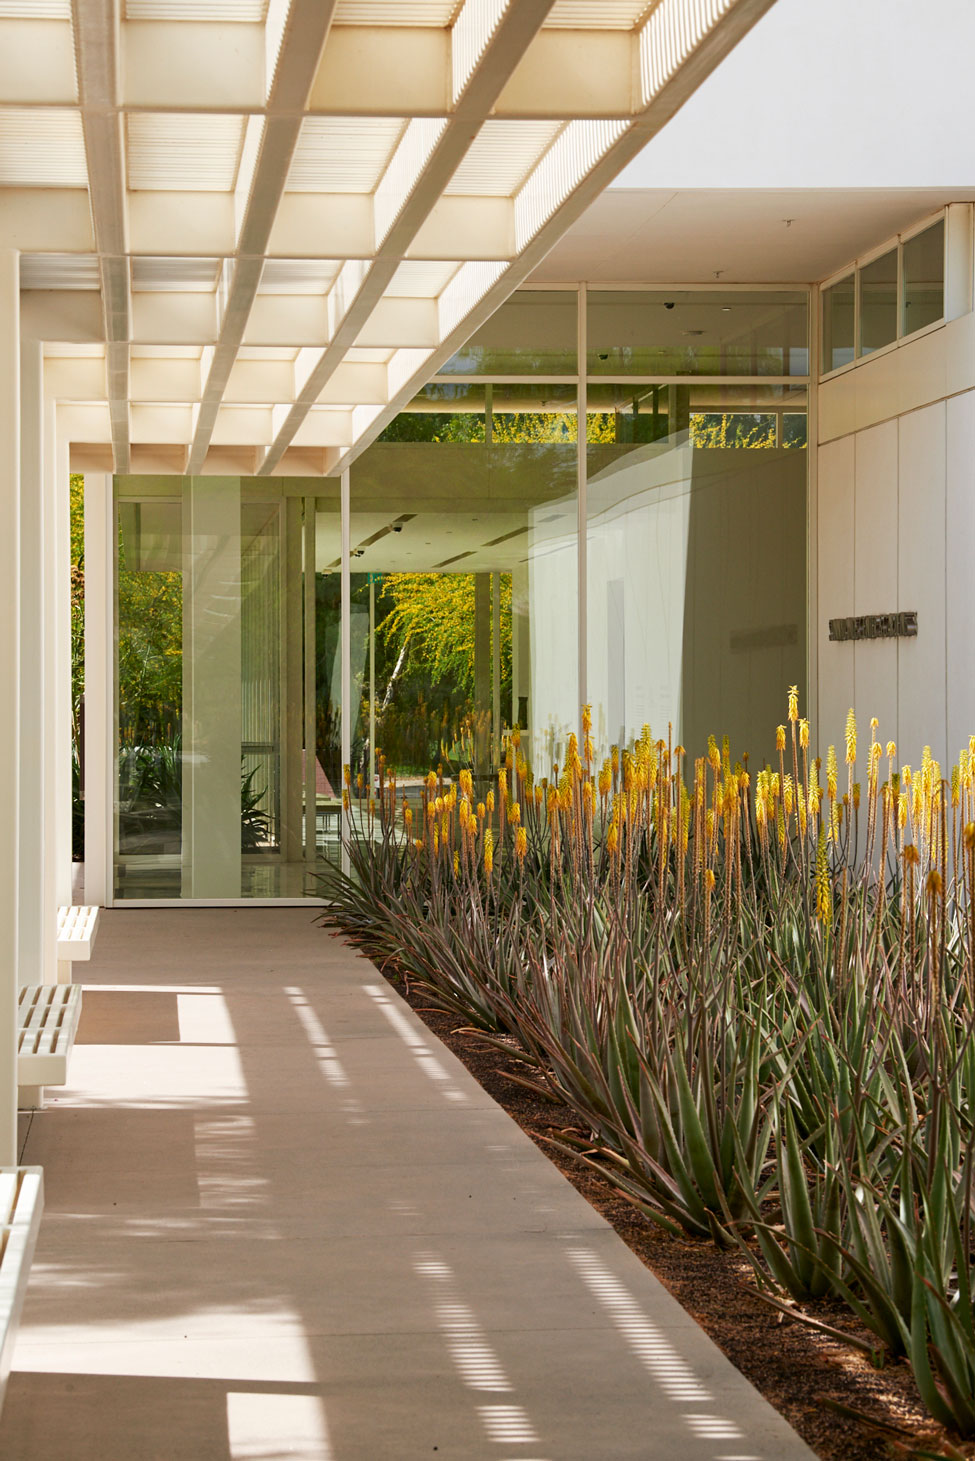 Flowering Medicinal Aloe along a walkway and under a white trellis, facing the entrance of Sunnylands Center.